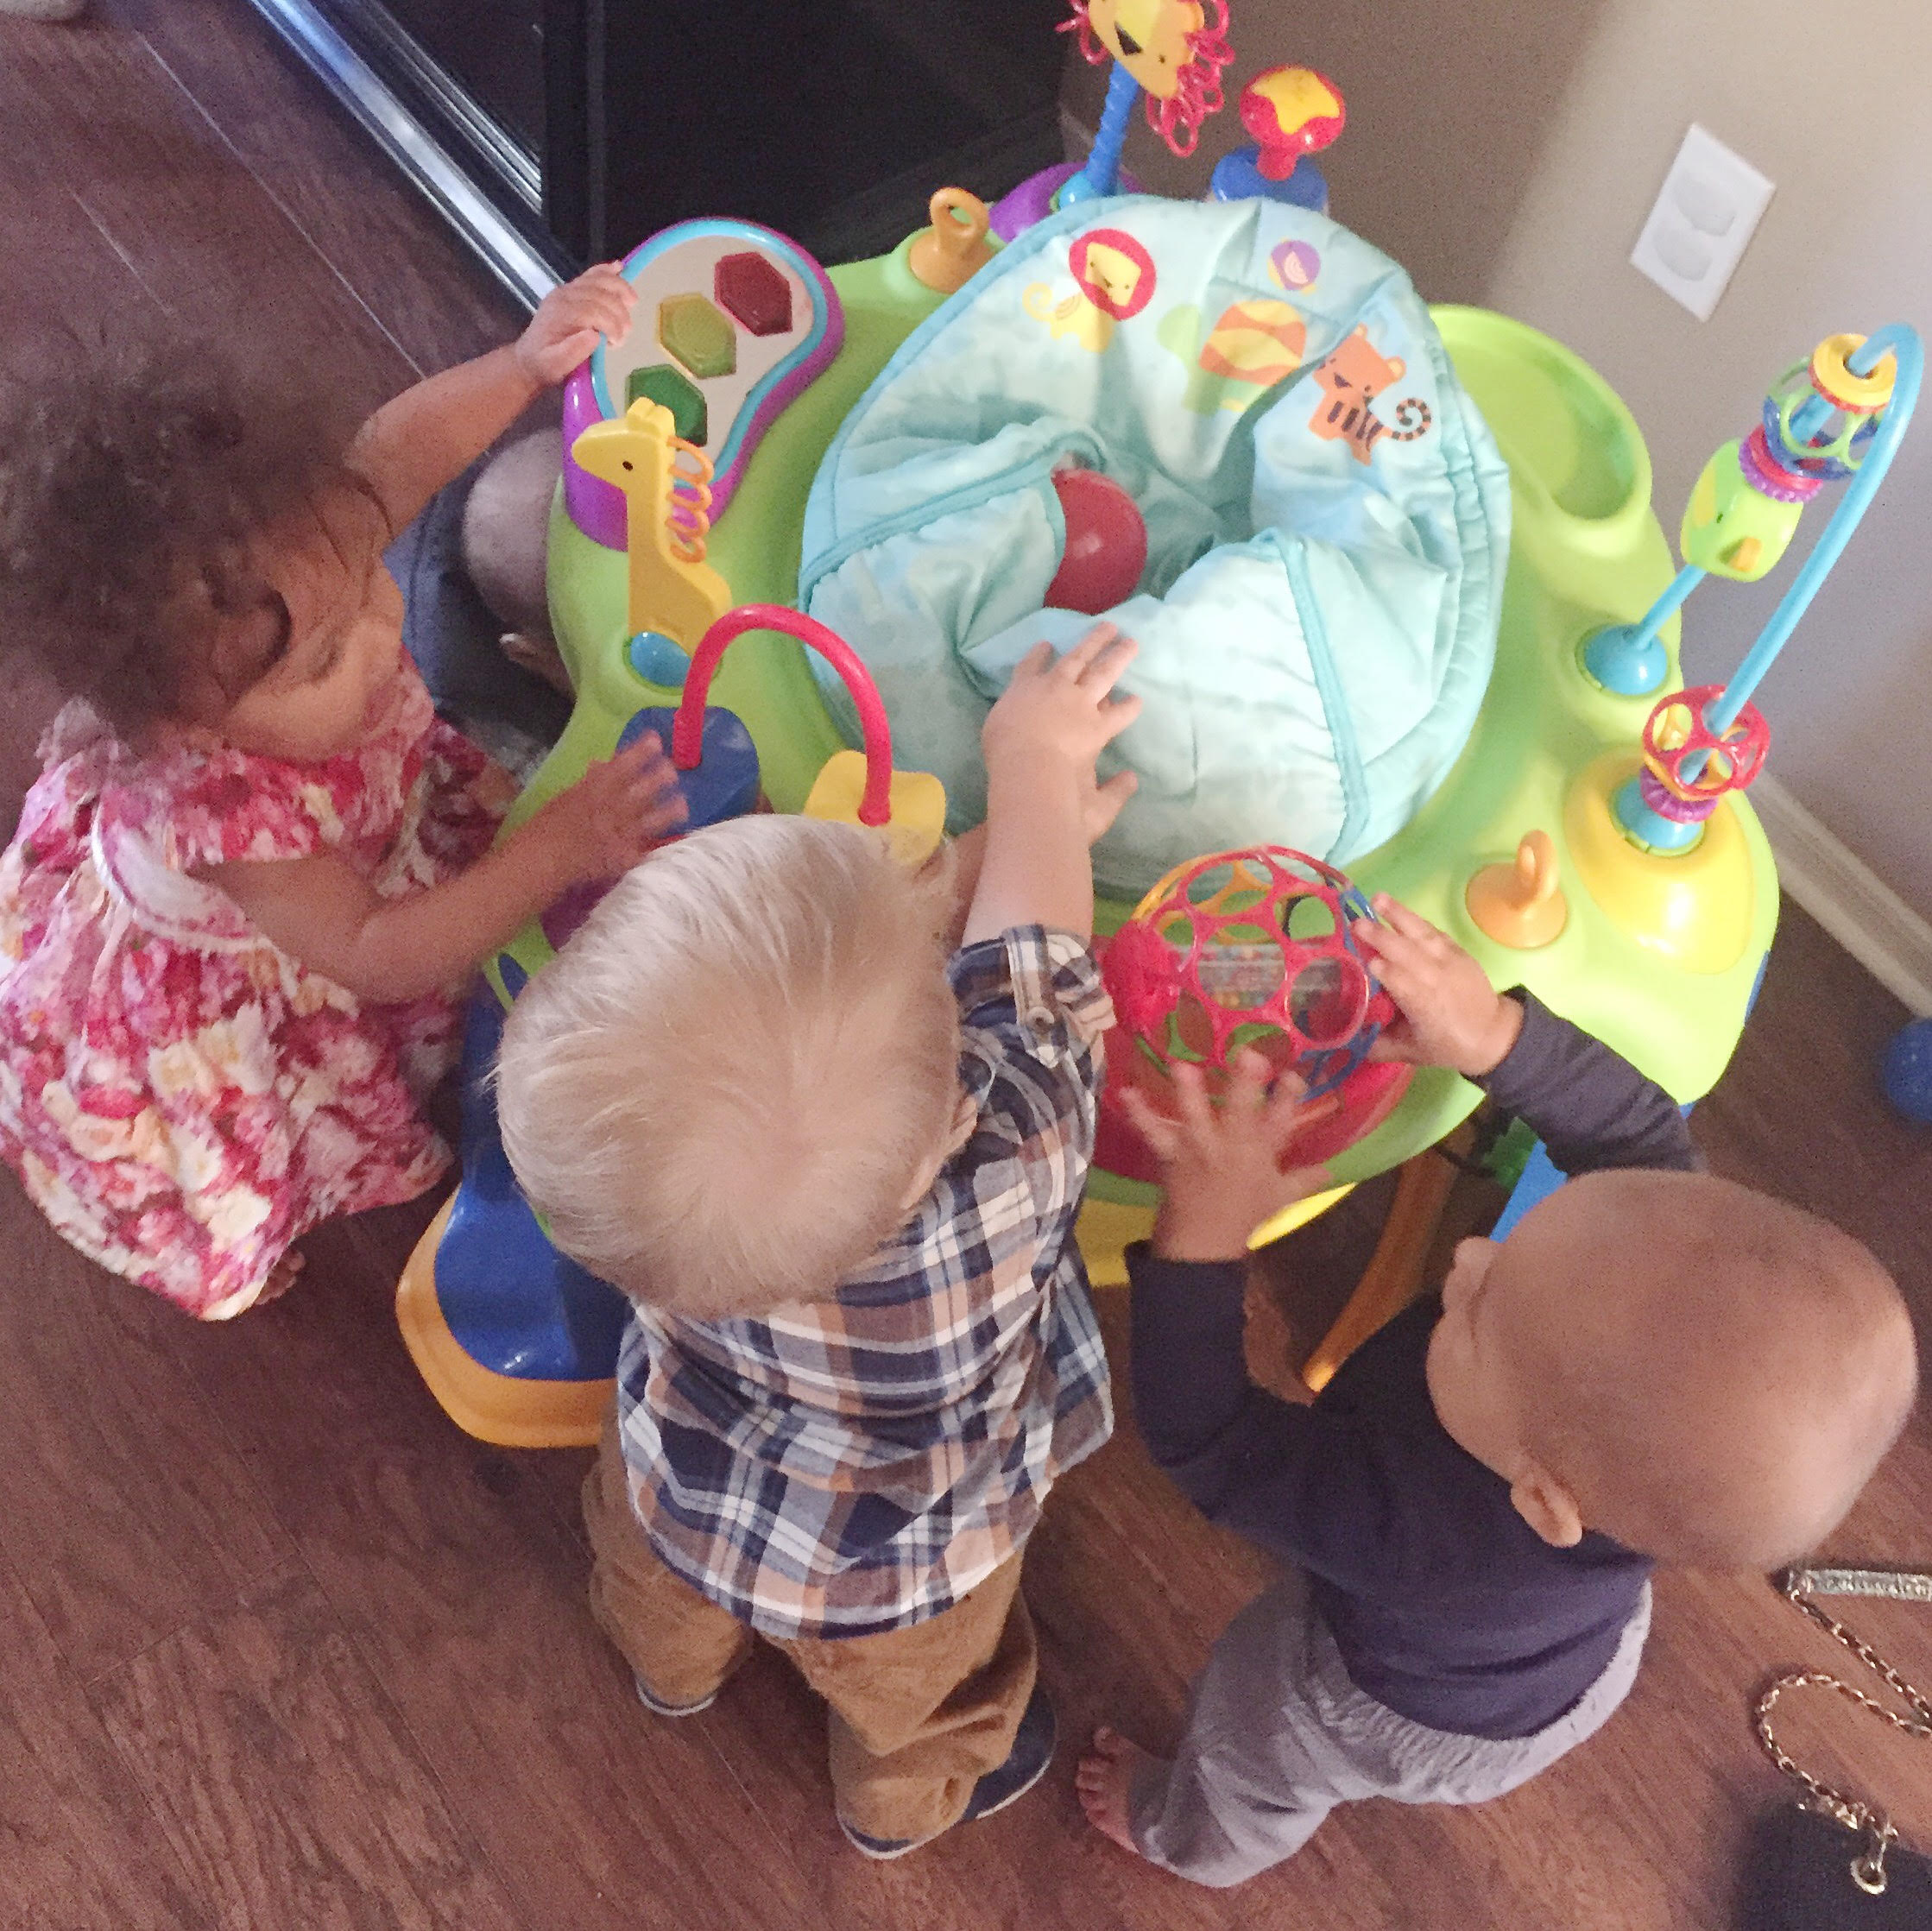 How To Host A Play Date And Make Mom Friends | www.MommaSociety.com | Momma Society-The Community of New moms